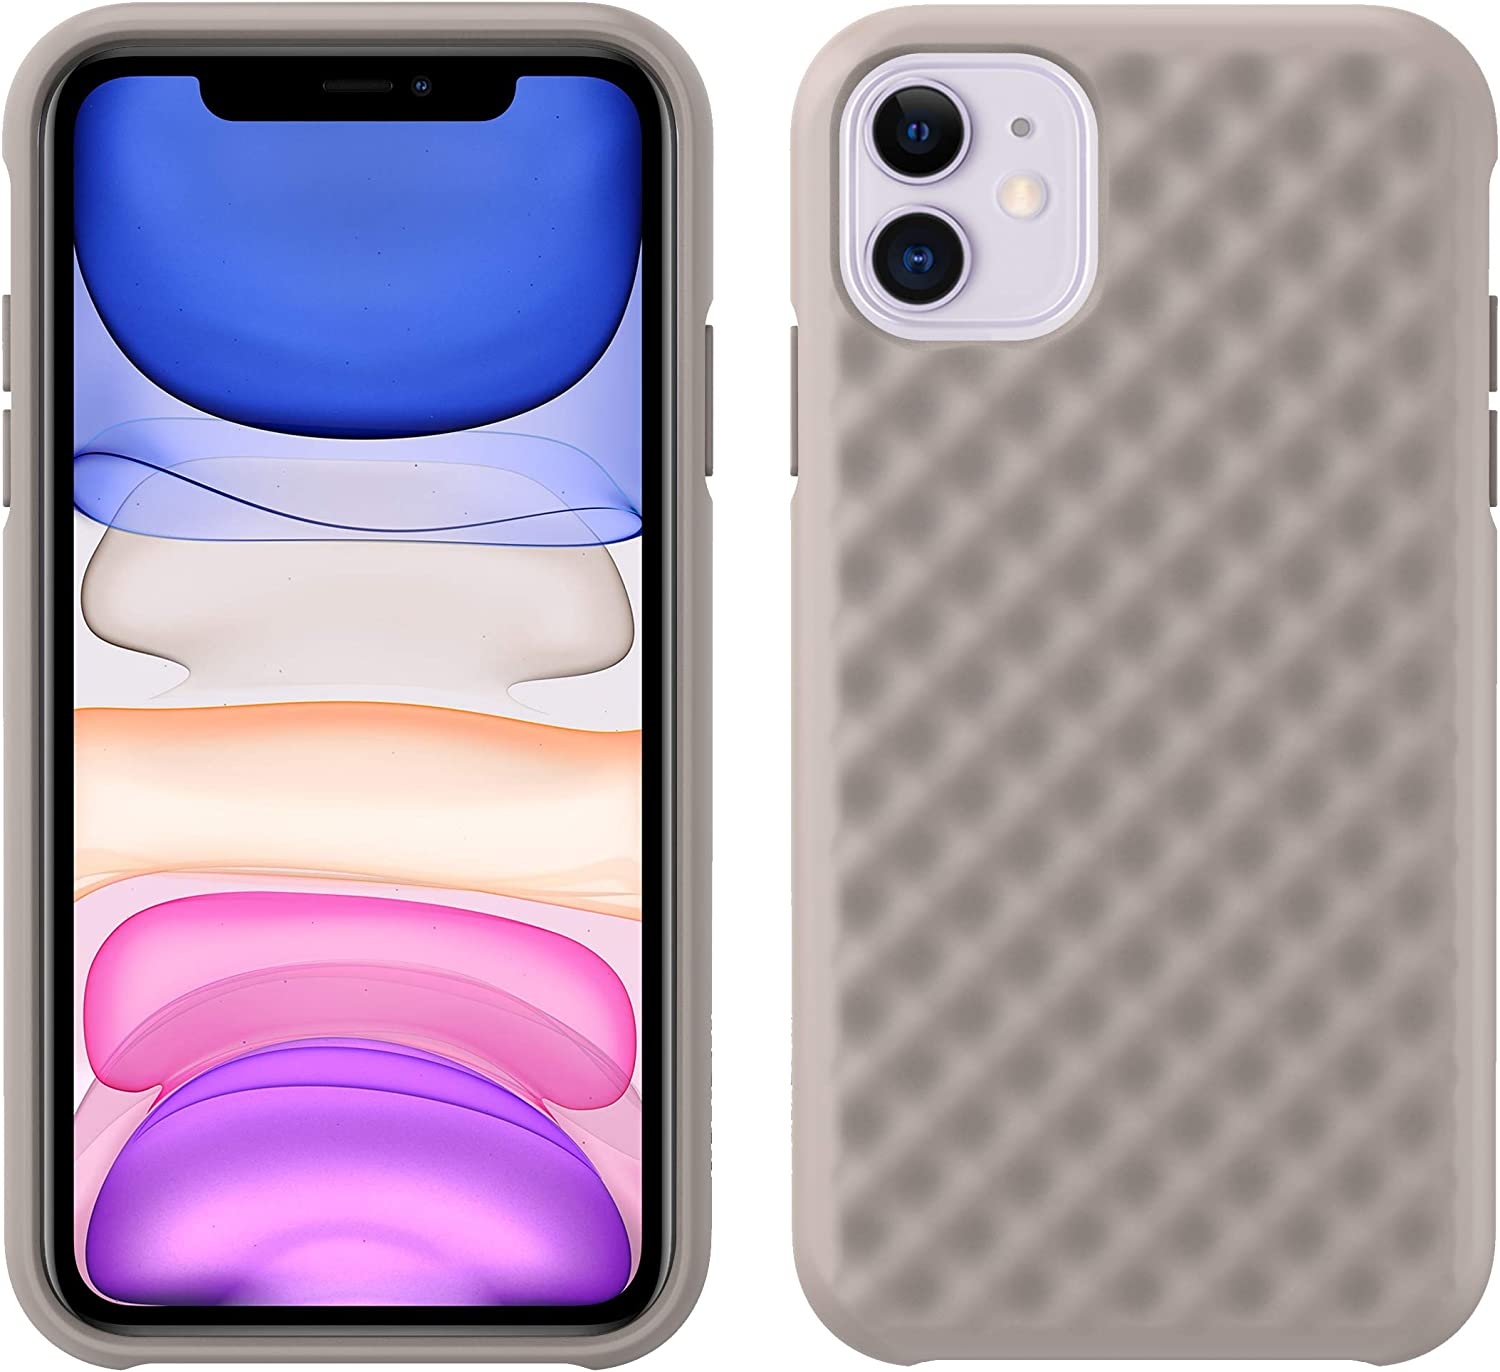 Pelican iPhone 11 Case, Rogue Series – Military Grade Drop Tested, TPU Protective Case for Apple iPhone 11 - Photoluminescent, Taupe